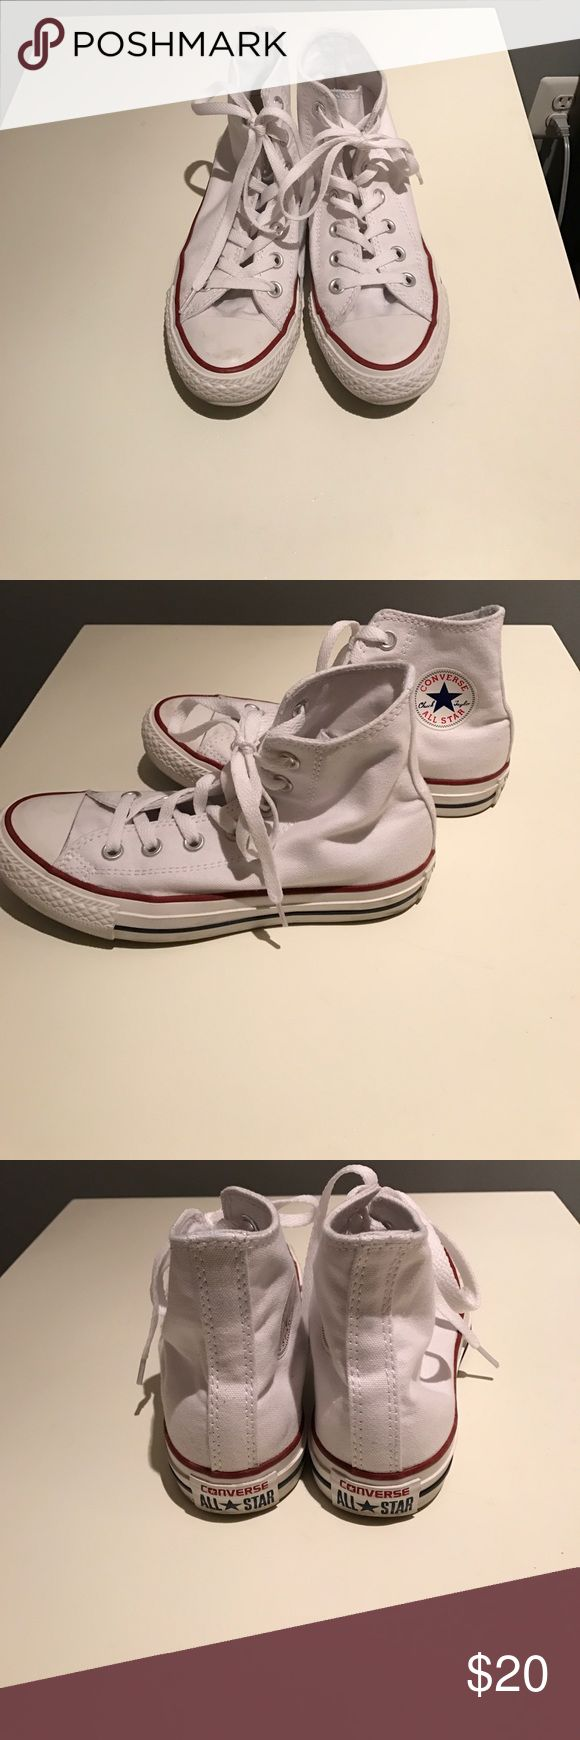 Converse high top chuck taylors Only been worn a few times! Small scuff on the top of the shoe (barely visible). Great condition! Converse Shoes Sneakers